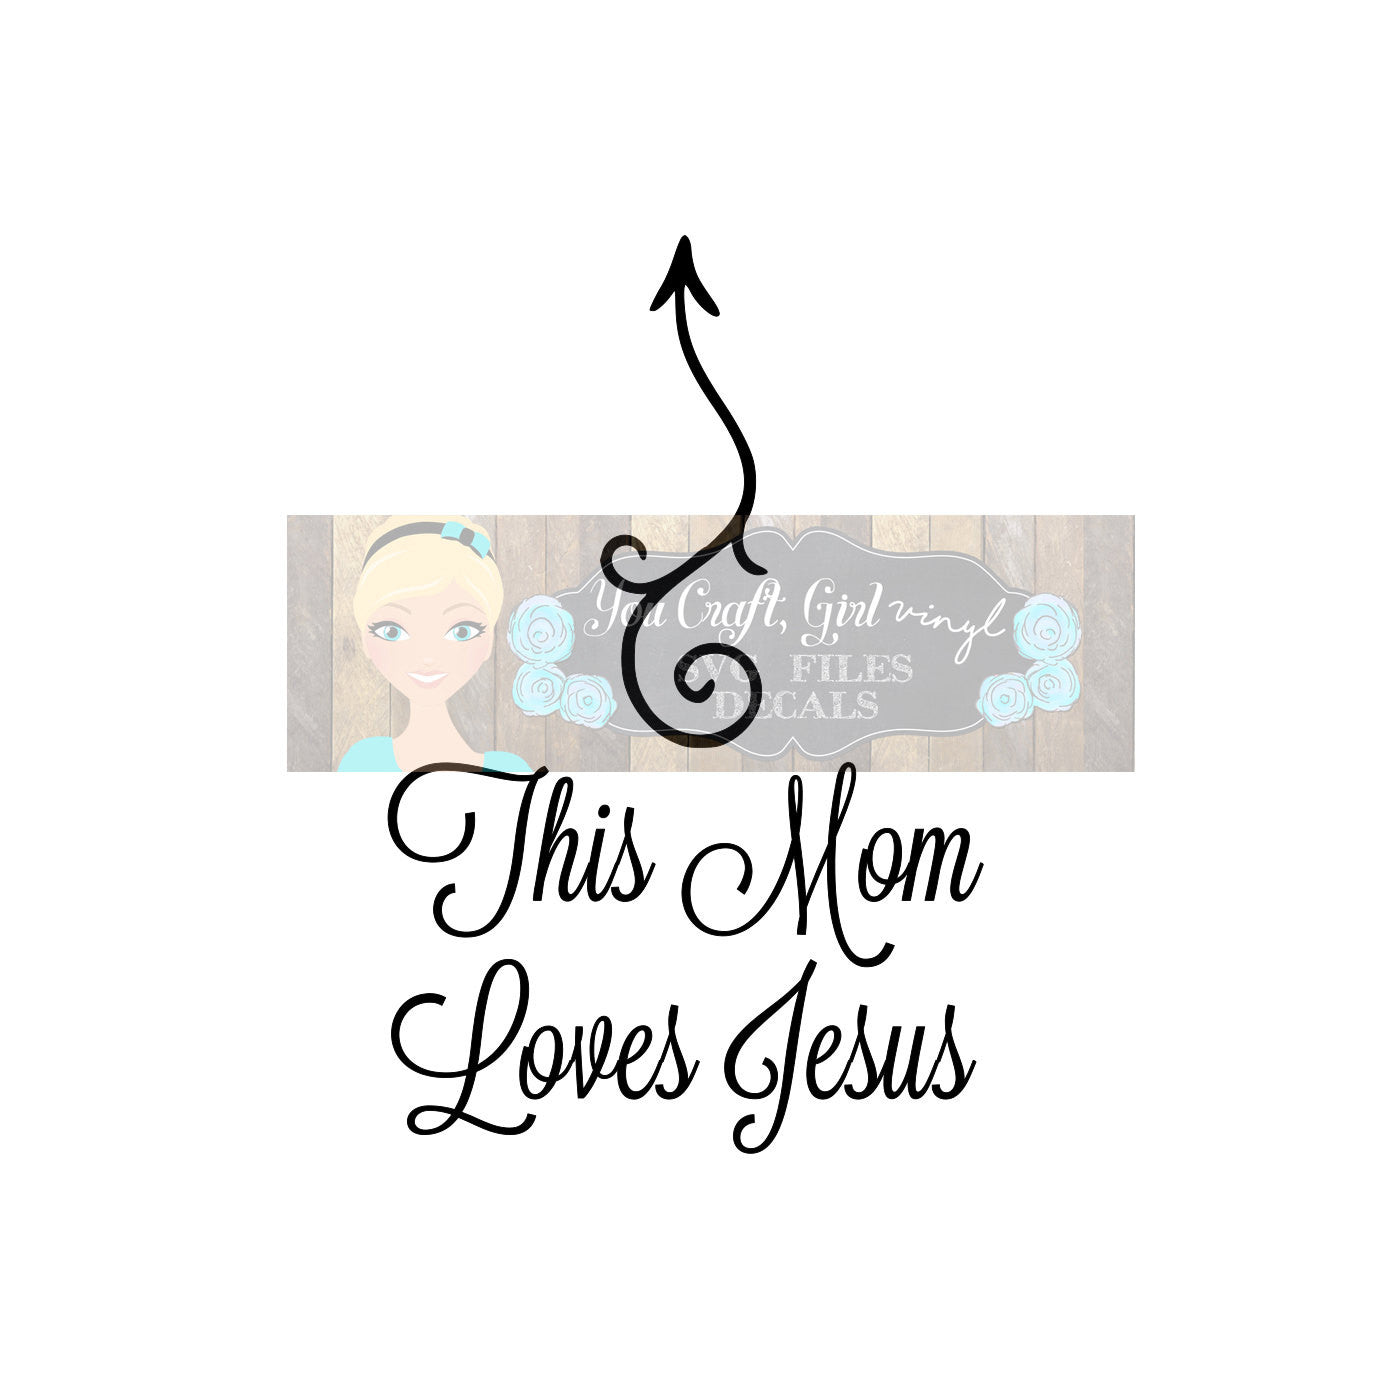 This mom loves jesus arrow svg dxf commercial use svg tshirt svg christian svg religious decal